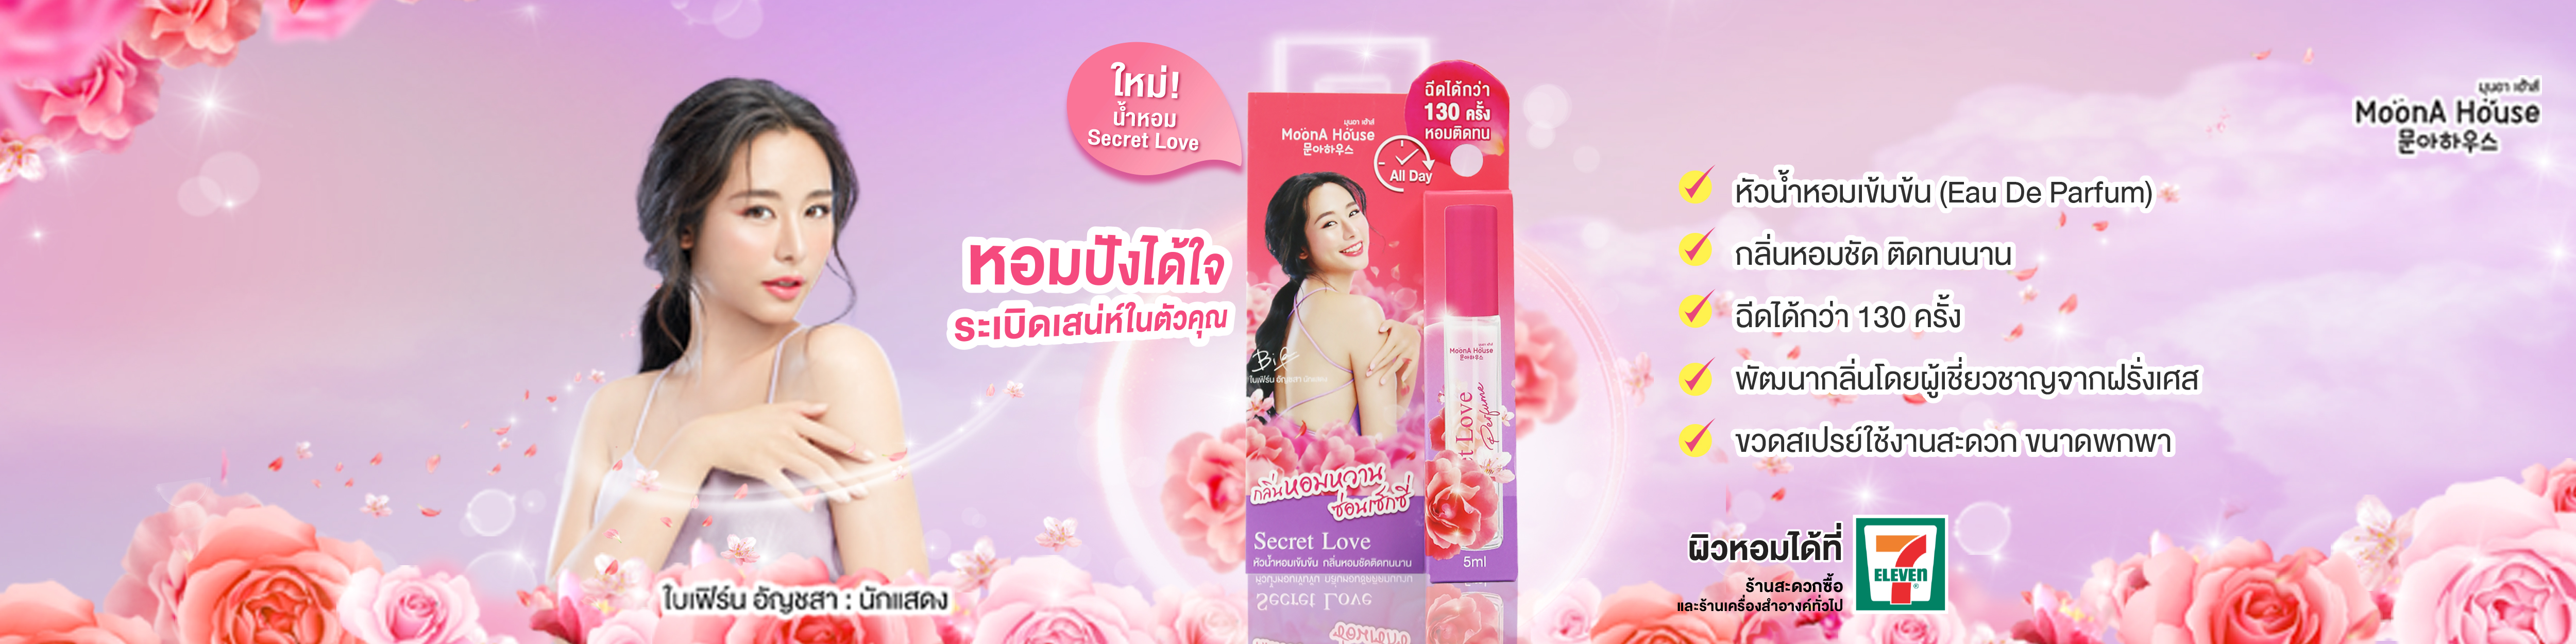 Banner Web MPS 5000X1250-03